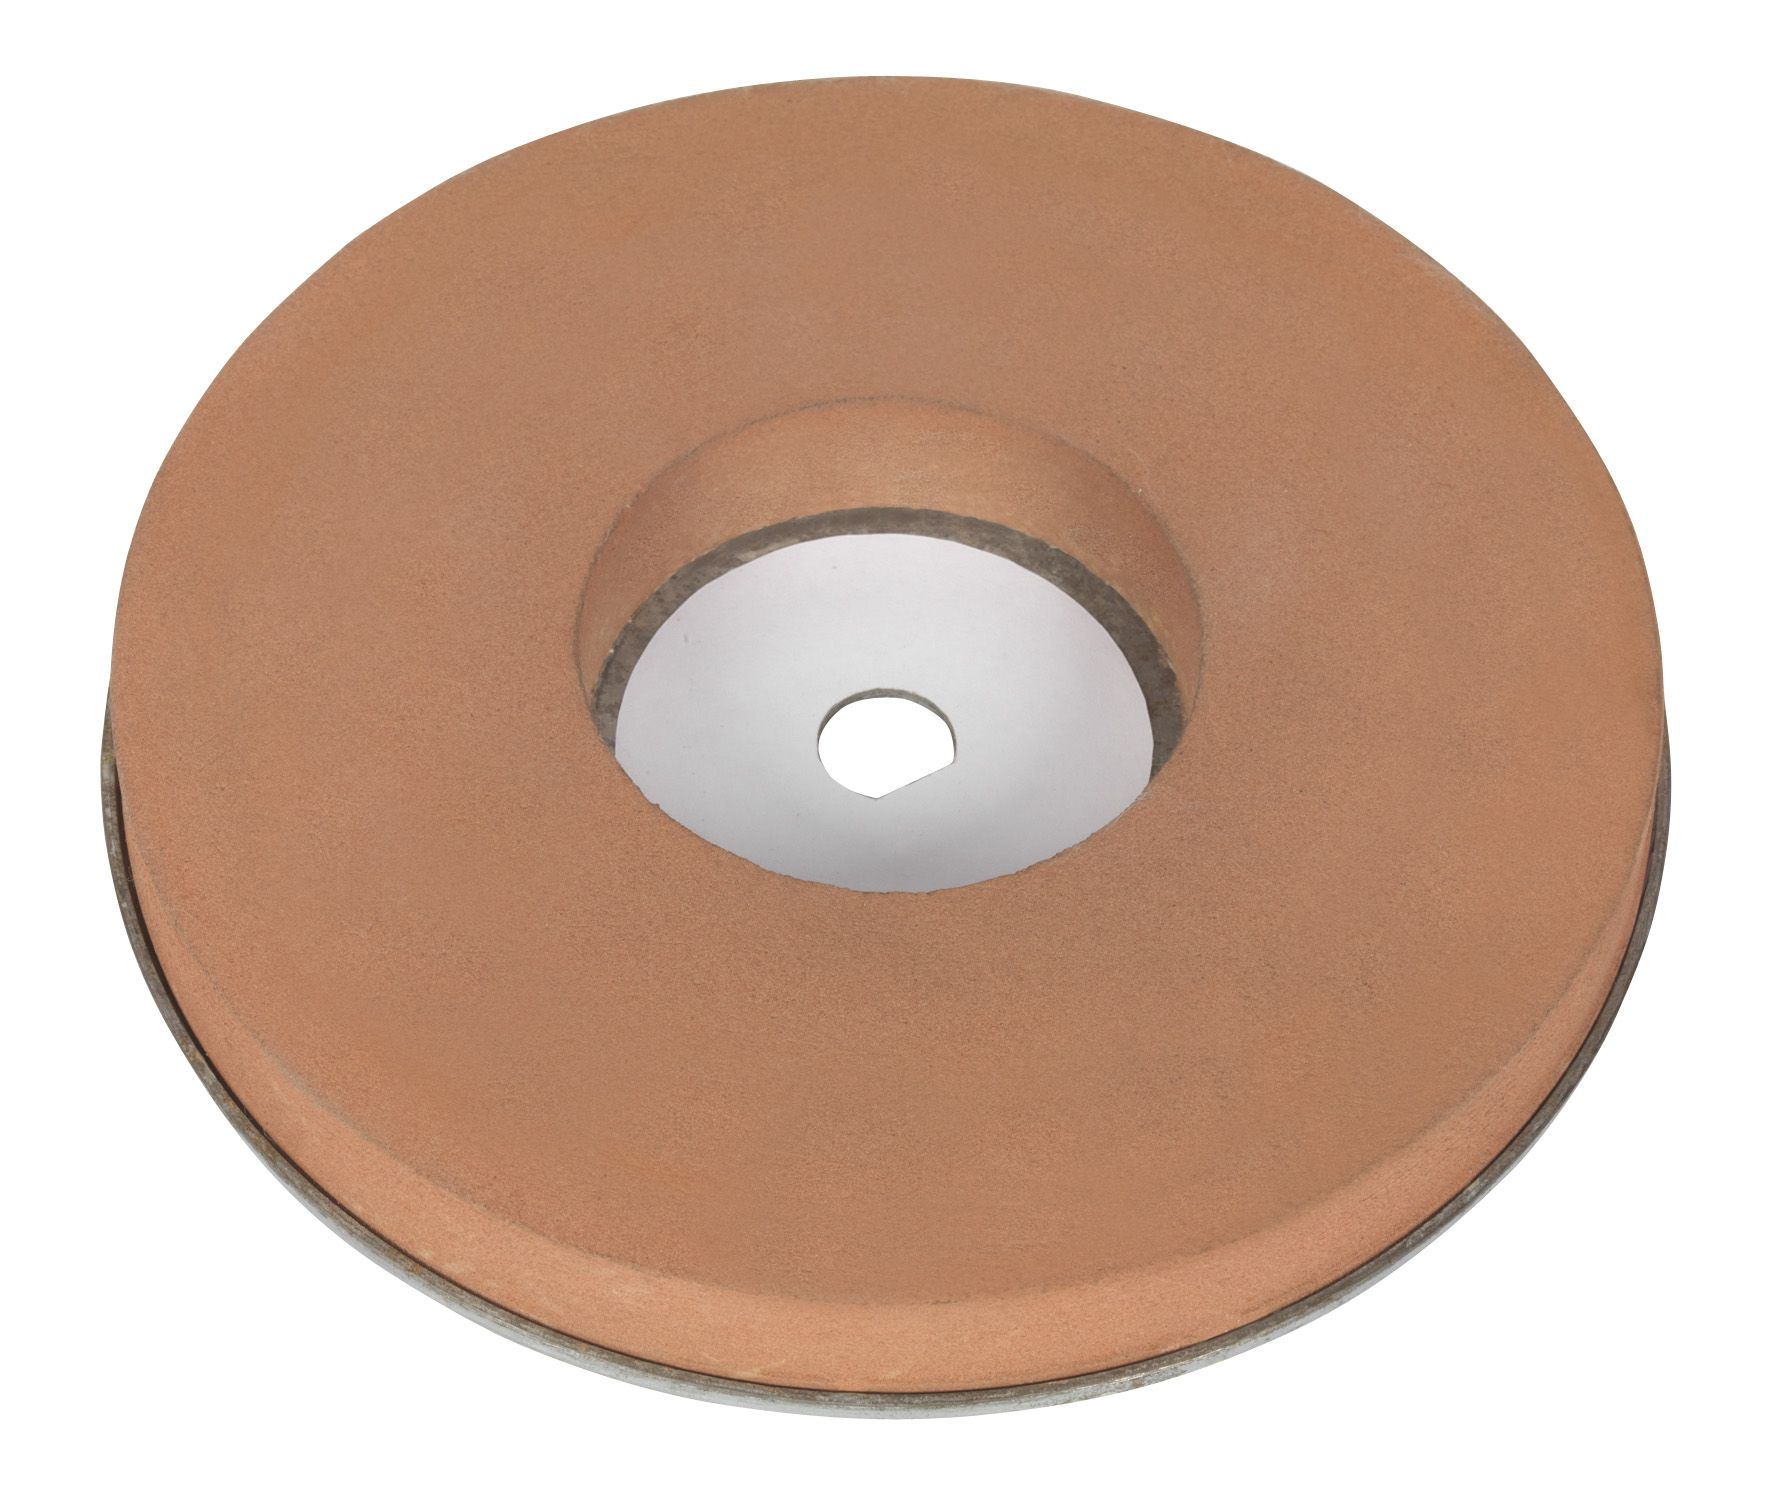 Sealey Wet Stone Wheel Ø200mm for SMS2107